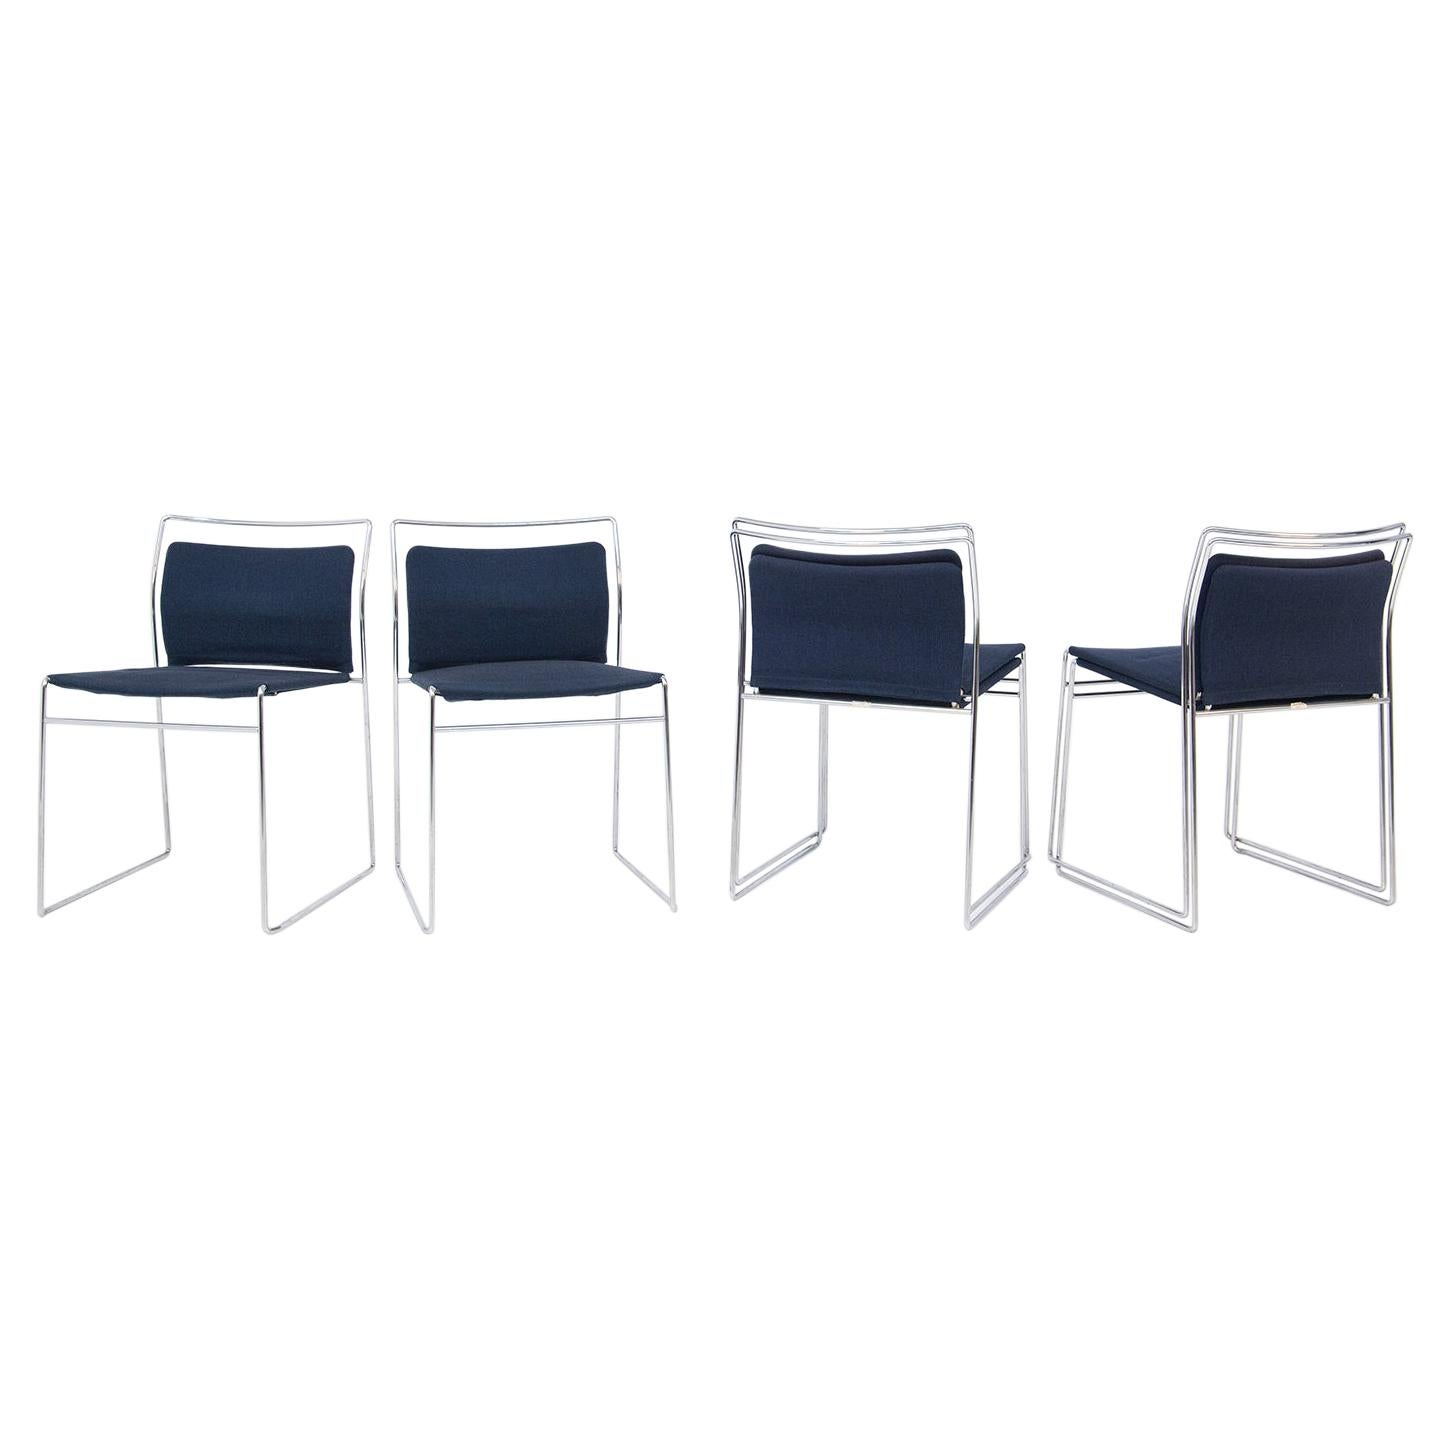 Set of Four Steel and Cotton Chairs by Kazuhide Takahama